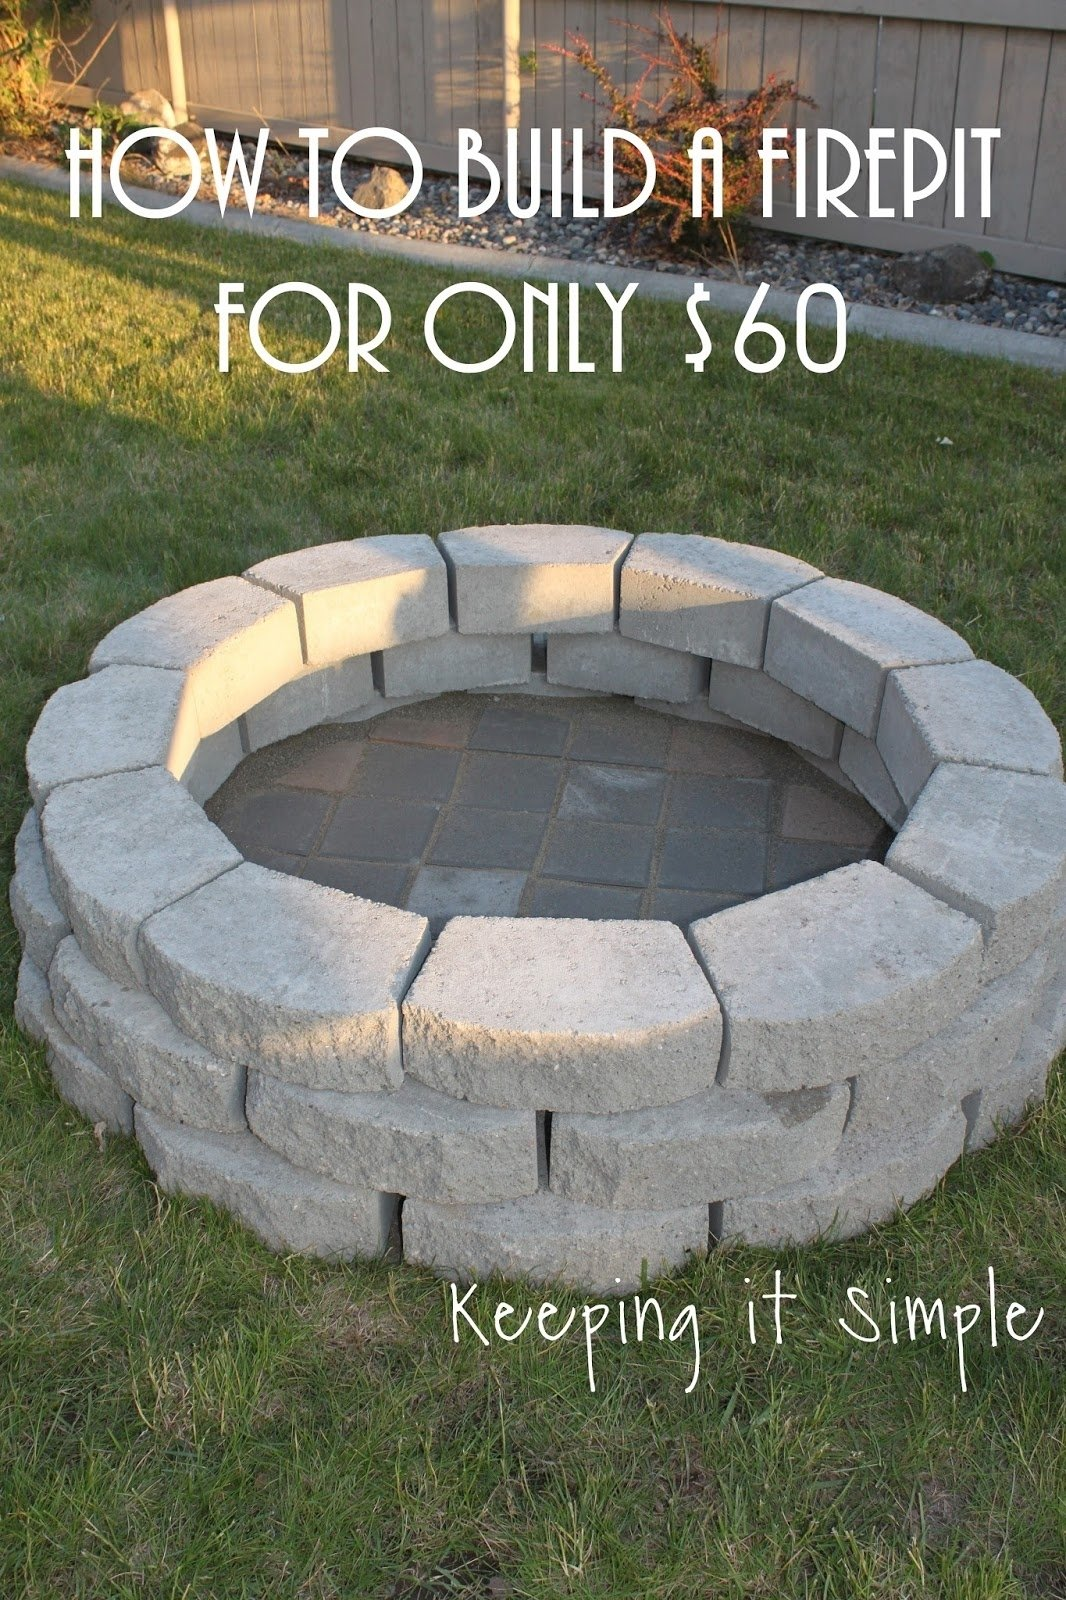 10 Fashionable Homemade Outdoor Fire Pit Ideas how to build a diy fire pit for only 60 e280a2 keeping it simple 4 2021